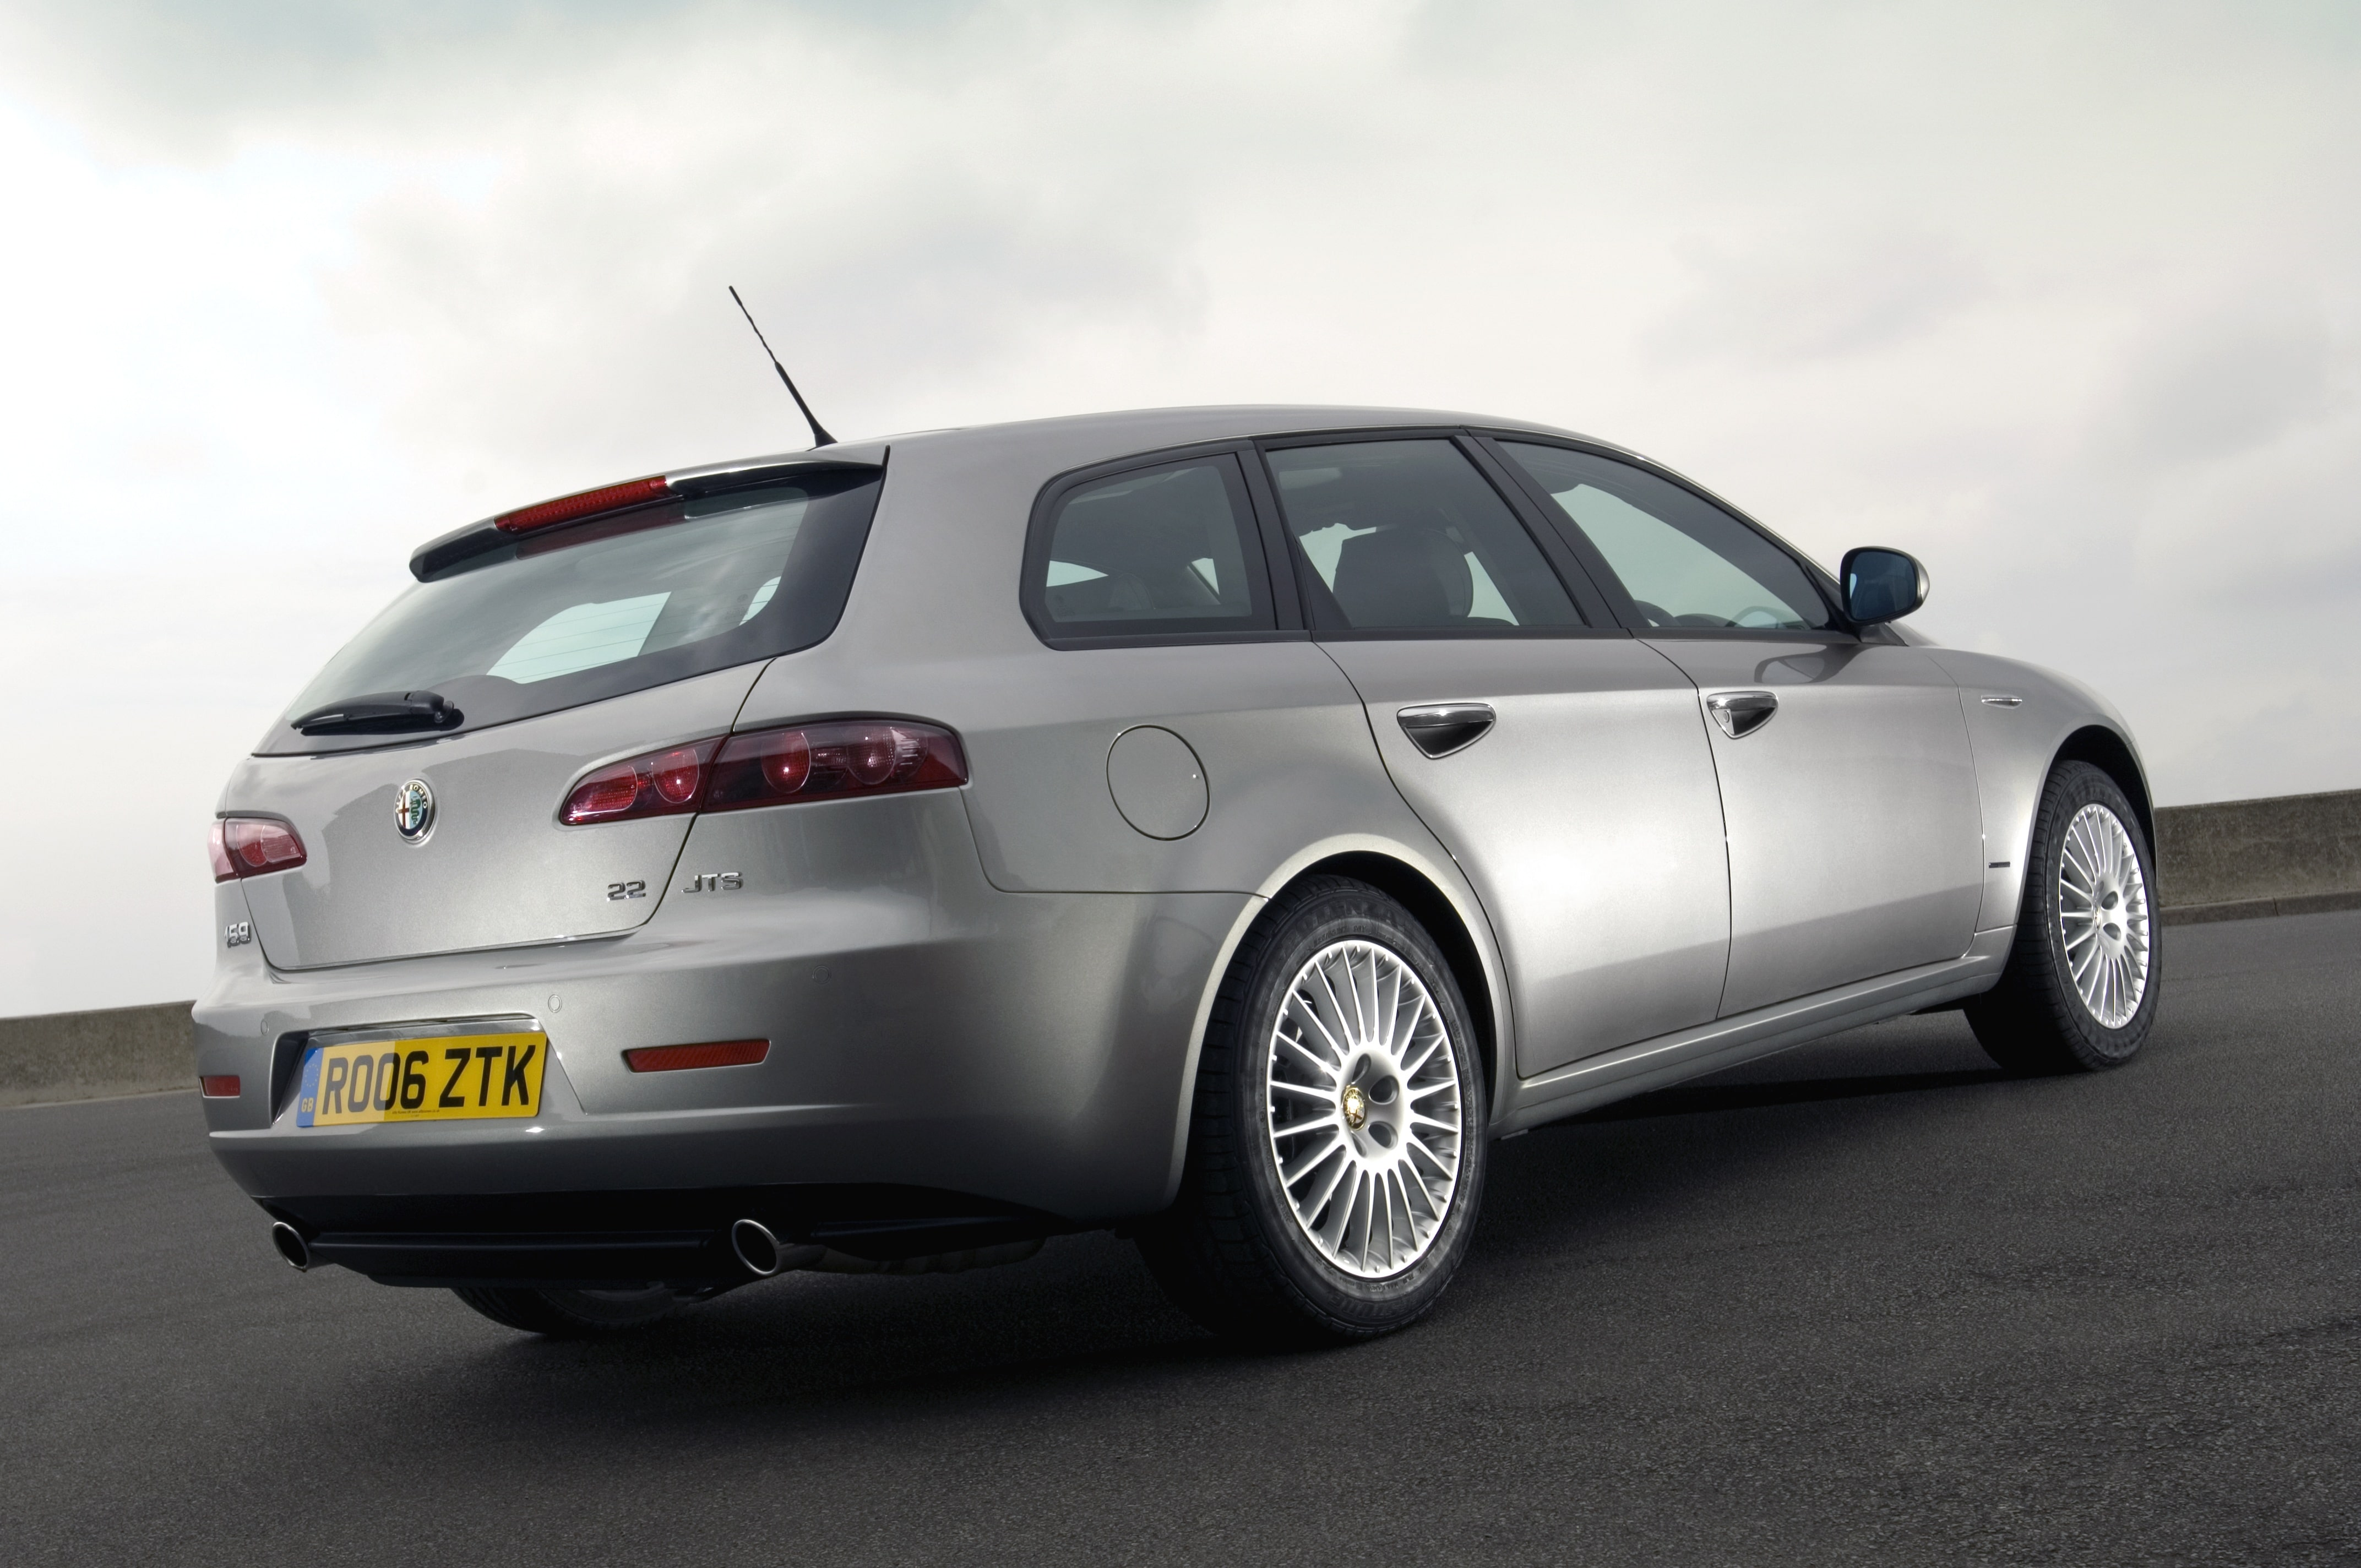 Alfa Romeo 159, Alfa, Alfa Romeo, Alfa 159, 159, italian car, saloon car, saloon, cheap car, bragain car, autotrader, ebay motors, motoring, automotive, classic car, retro car, car design, quantum of solace, car, cars